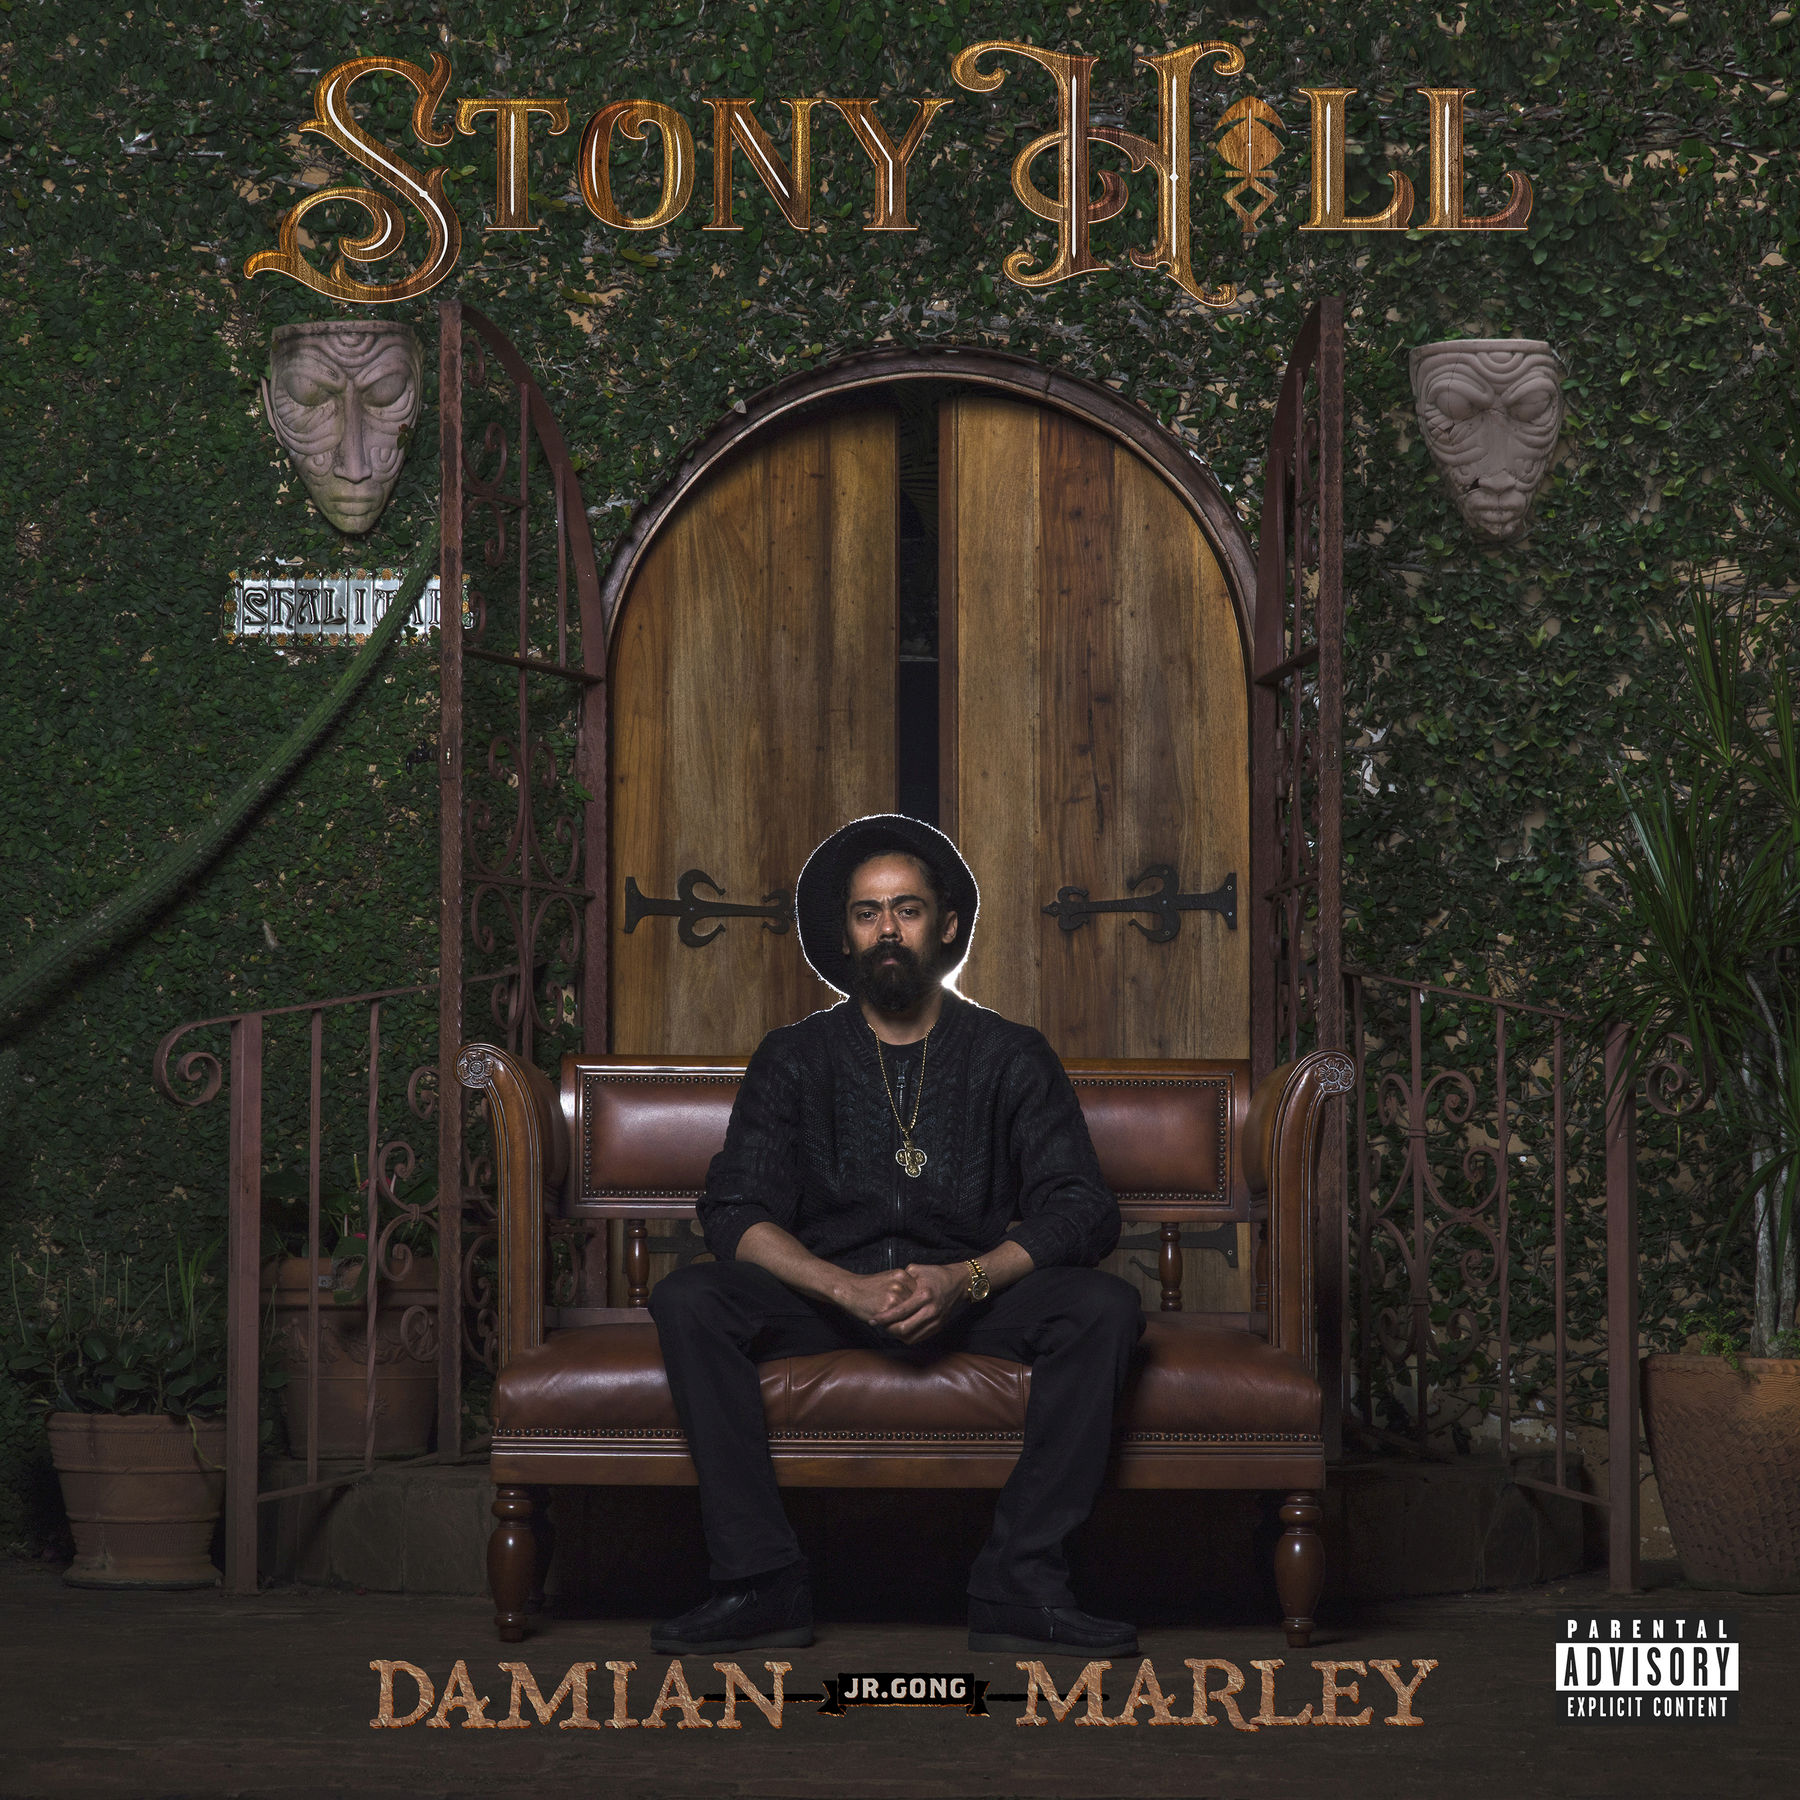 Damian Marley - Medication (feat. Stephen Marley)